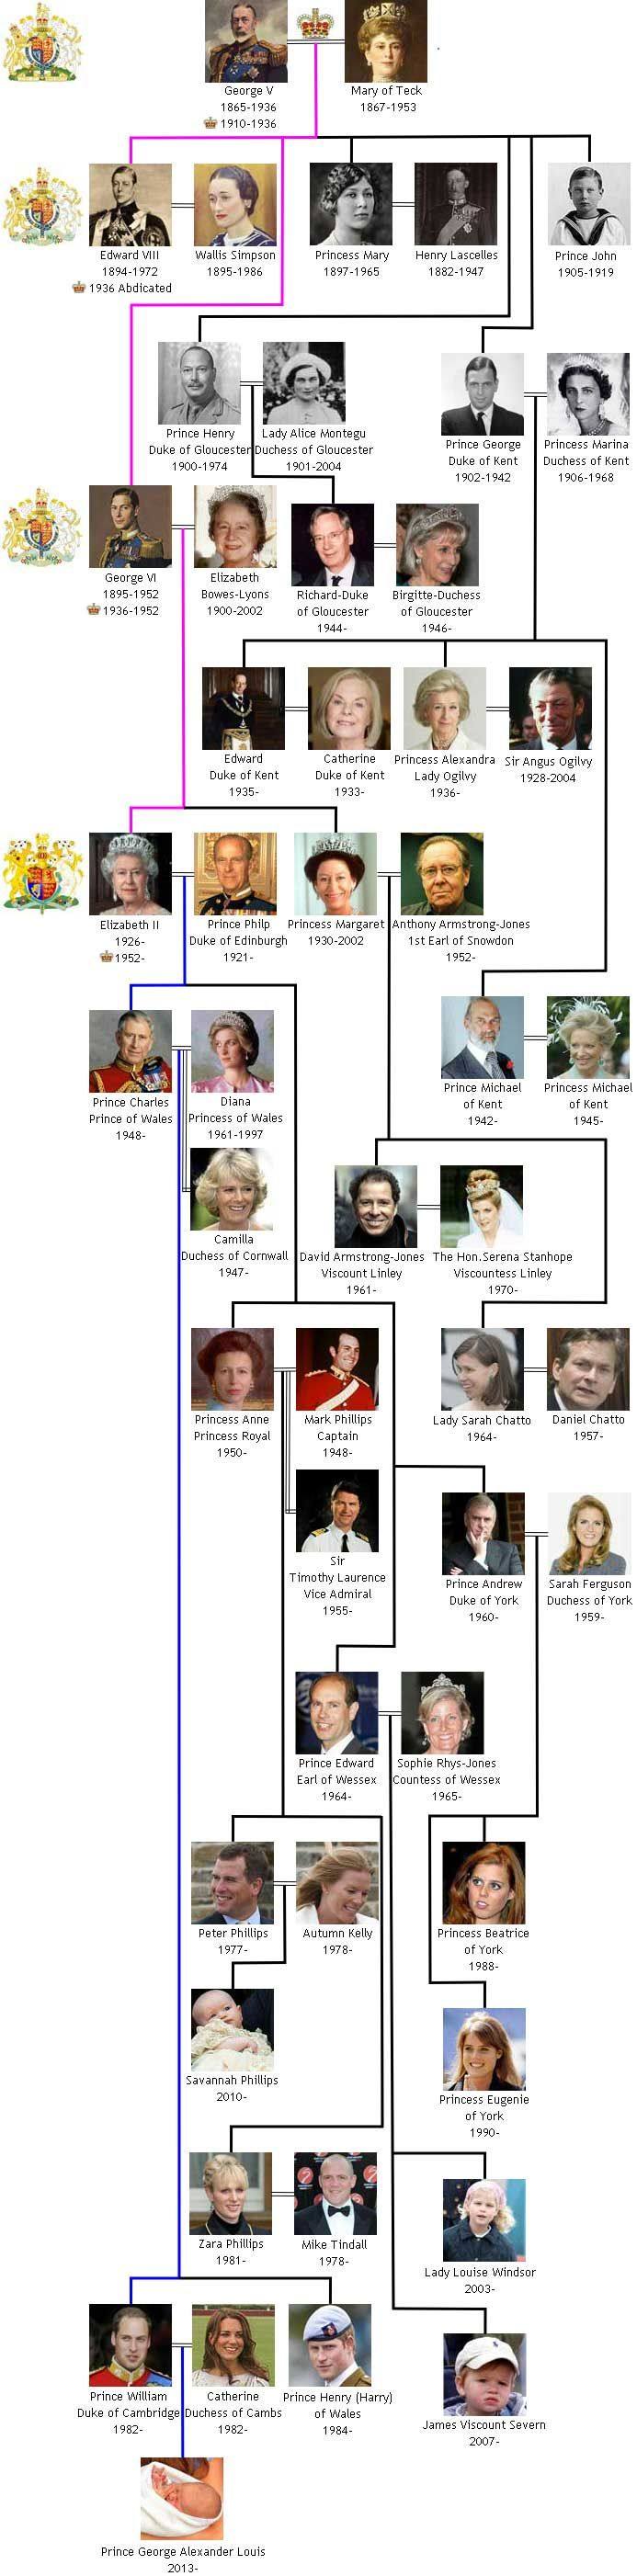 House of Windsor Royal Family Tree.